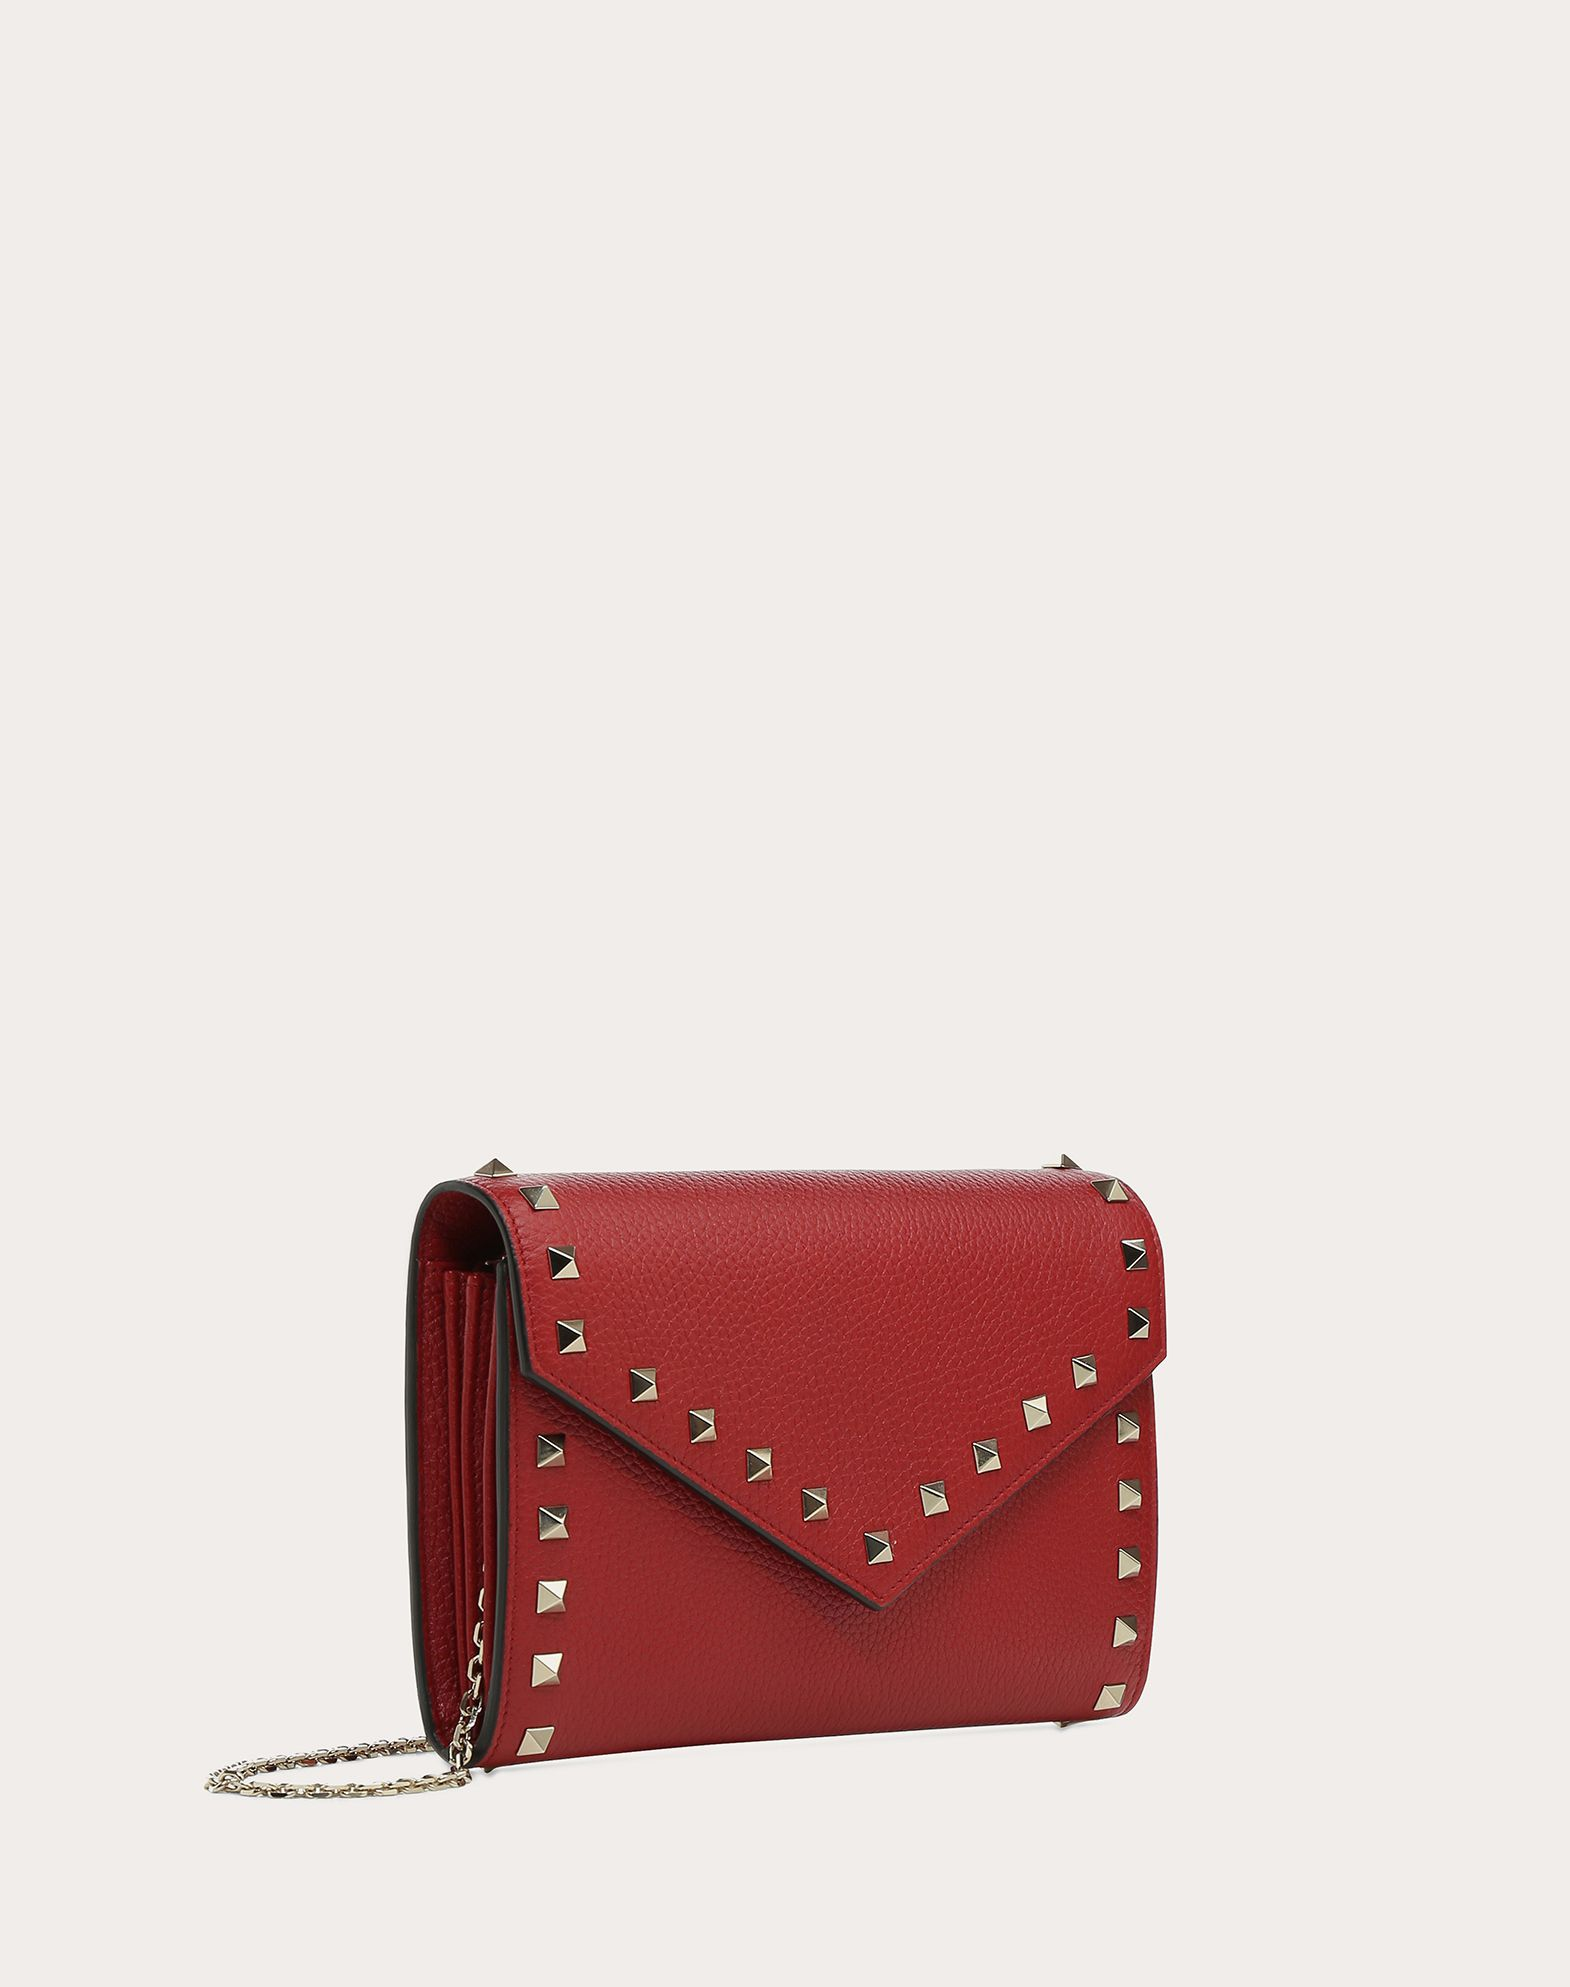 VALENTINO GARAVANI Rockstud Wallet with chain CHAIN WALLETS D e